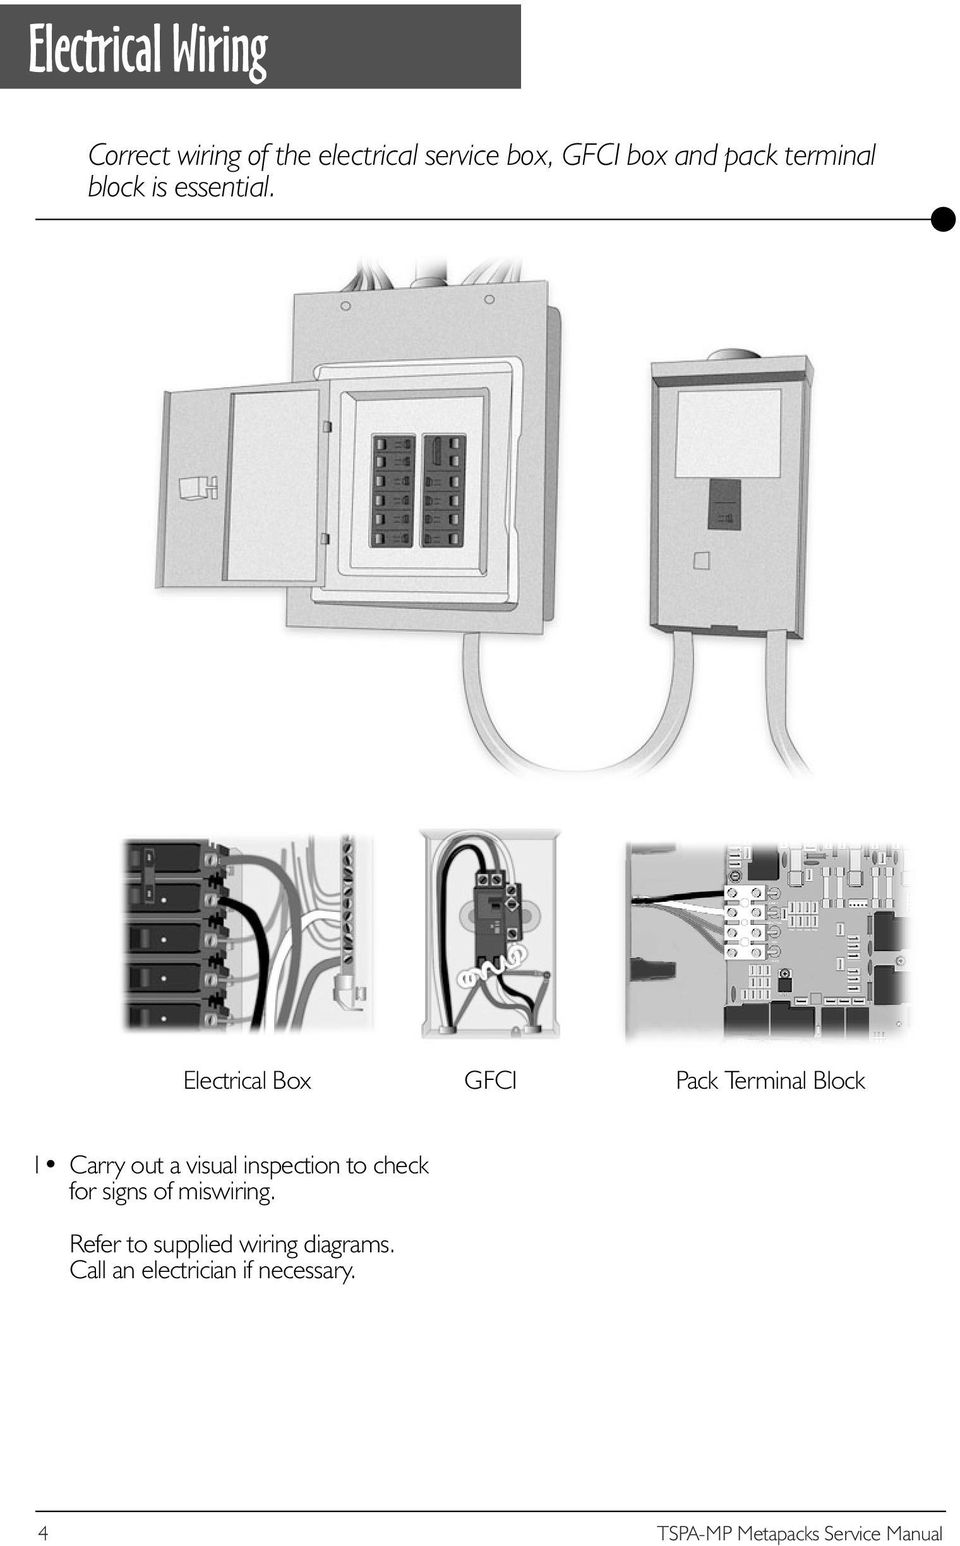 Coast Spas Tspa Mp Service Manual Visual Step By Guide To 67 Comments Miswiring A 120volt Rv Outlet With 240volts Electrical Box Gfci Pack Terminal Block 1 Carry Out Inspection